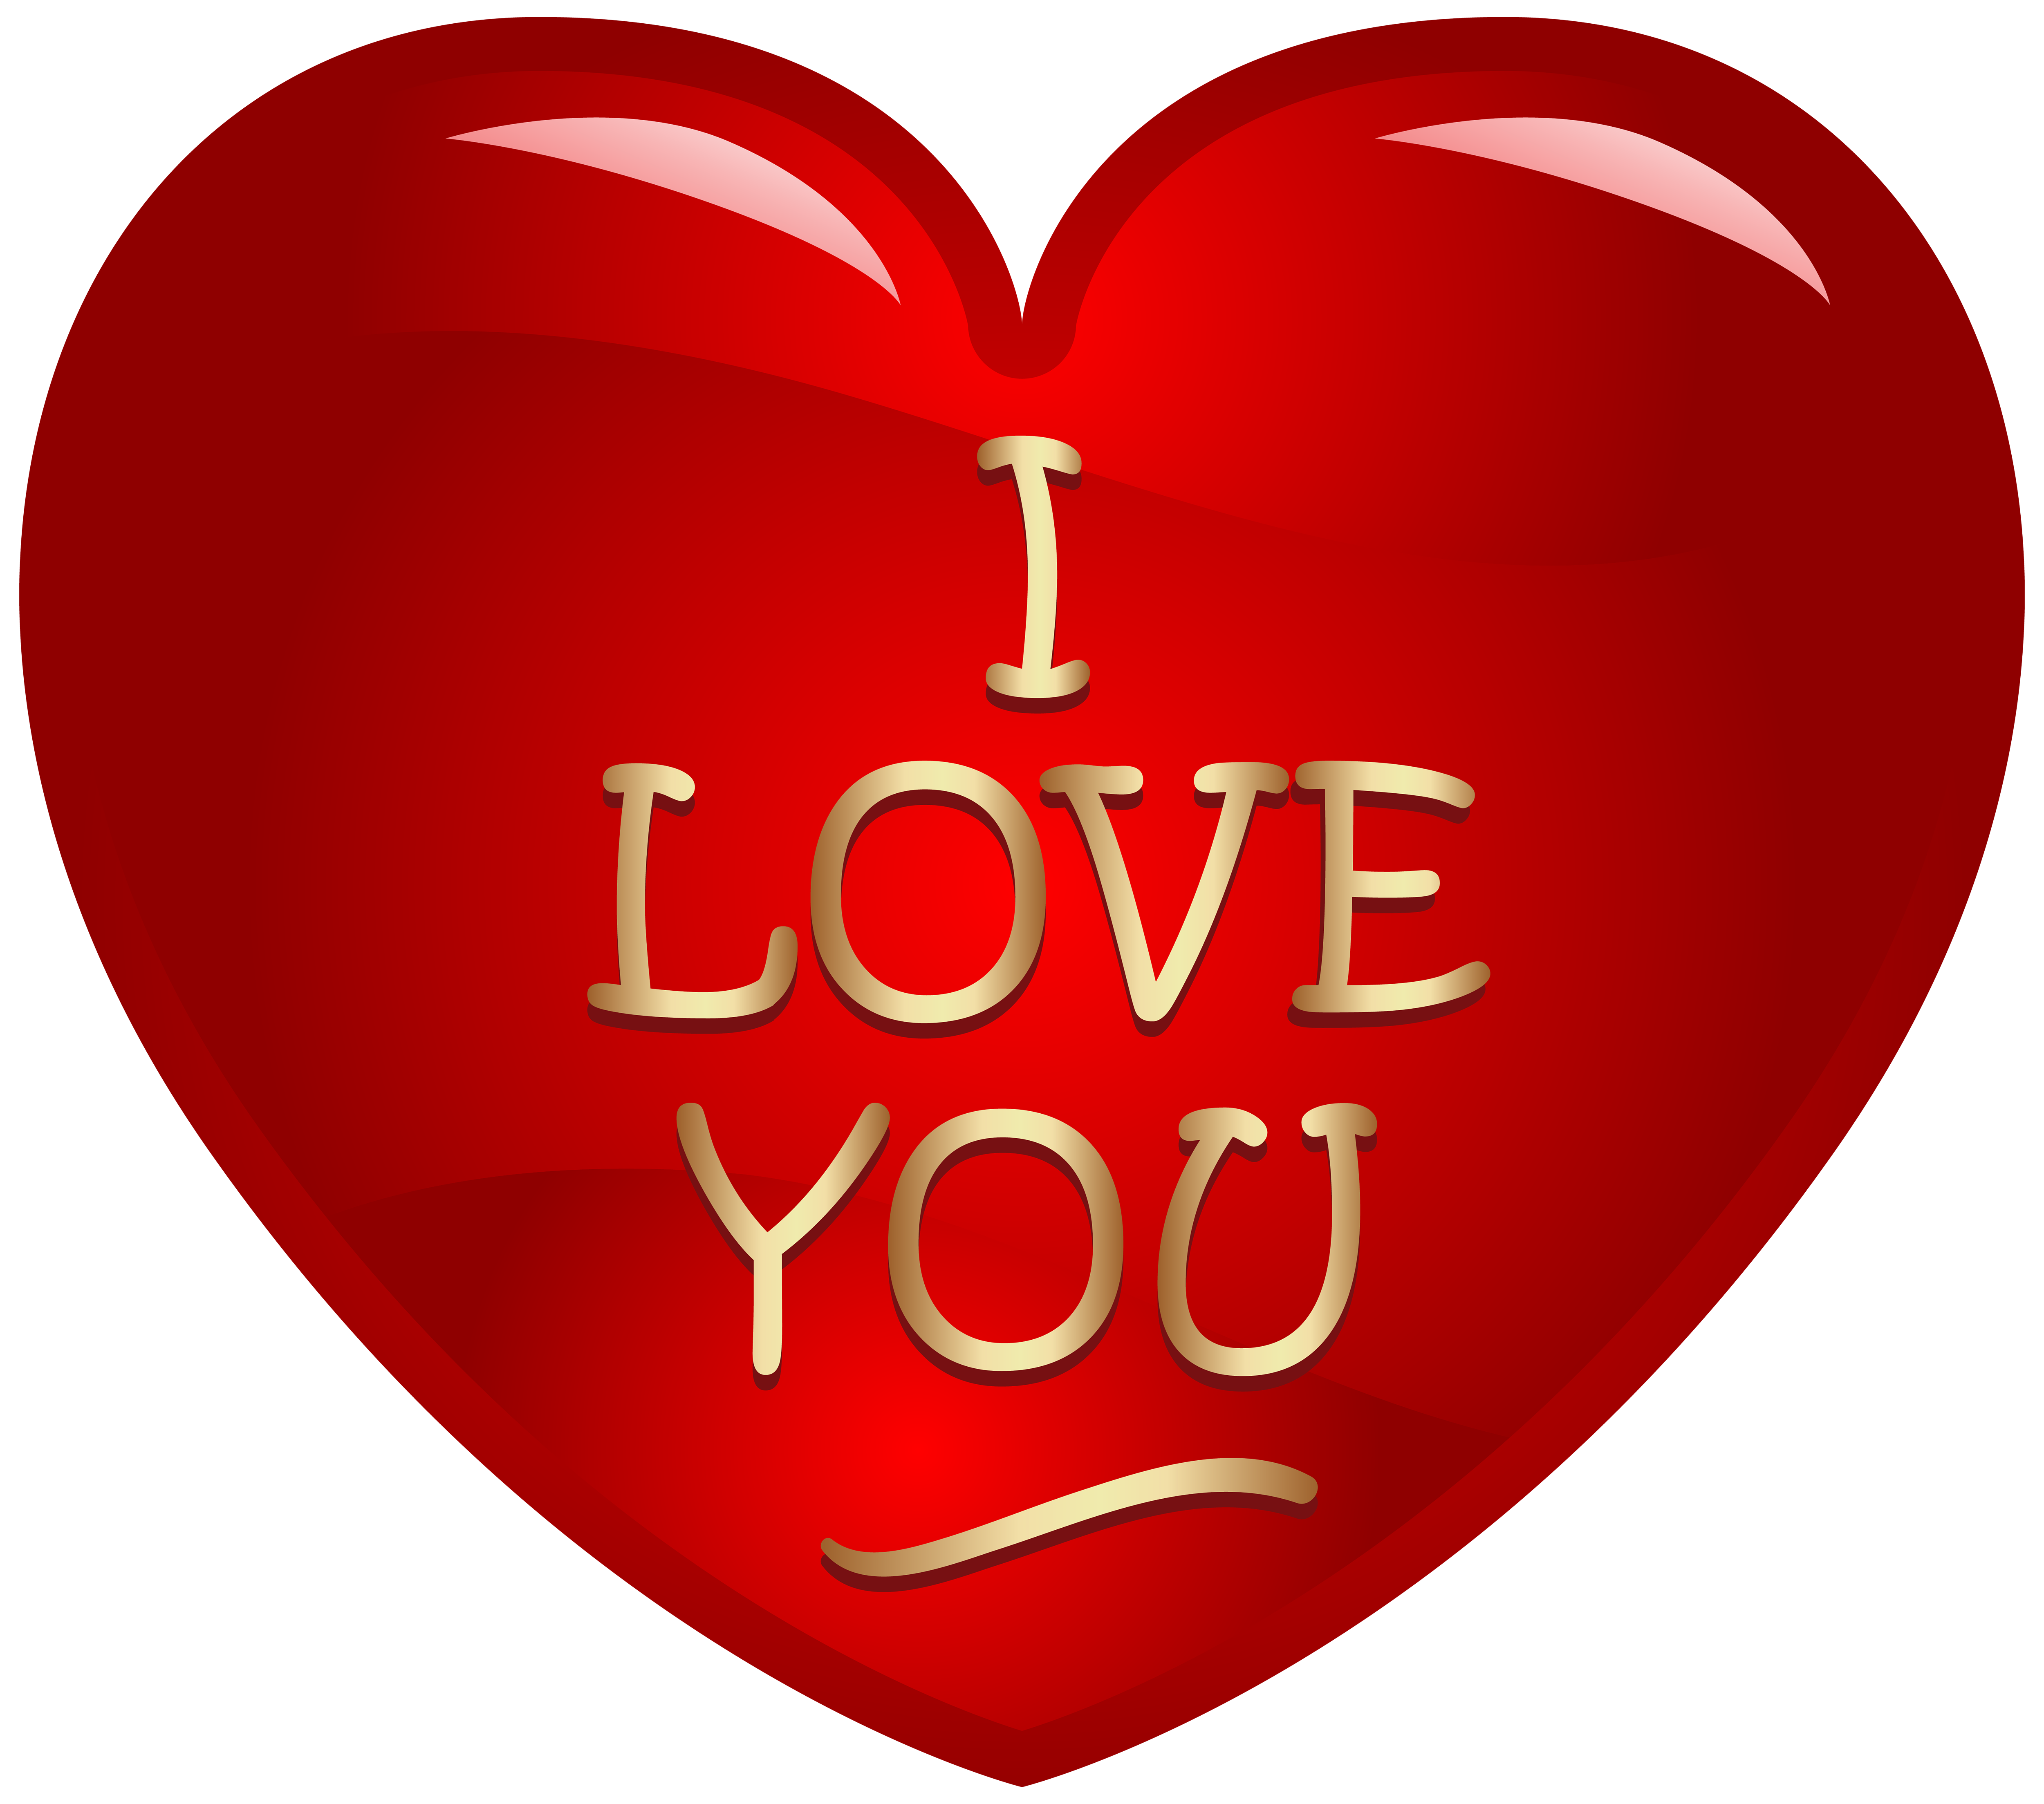 I Love You Heart PNG Clipart Image.